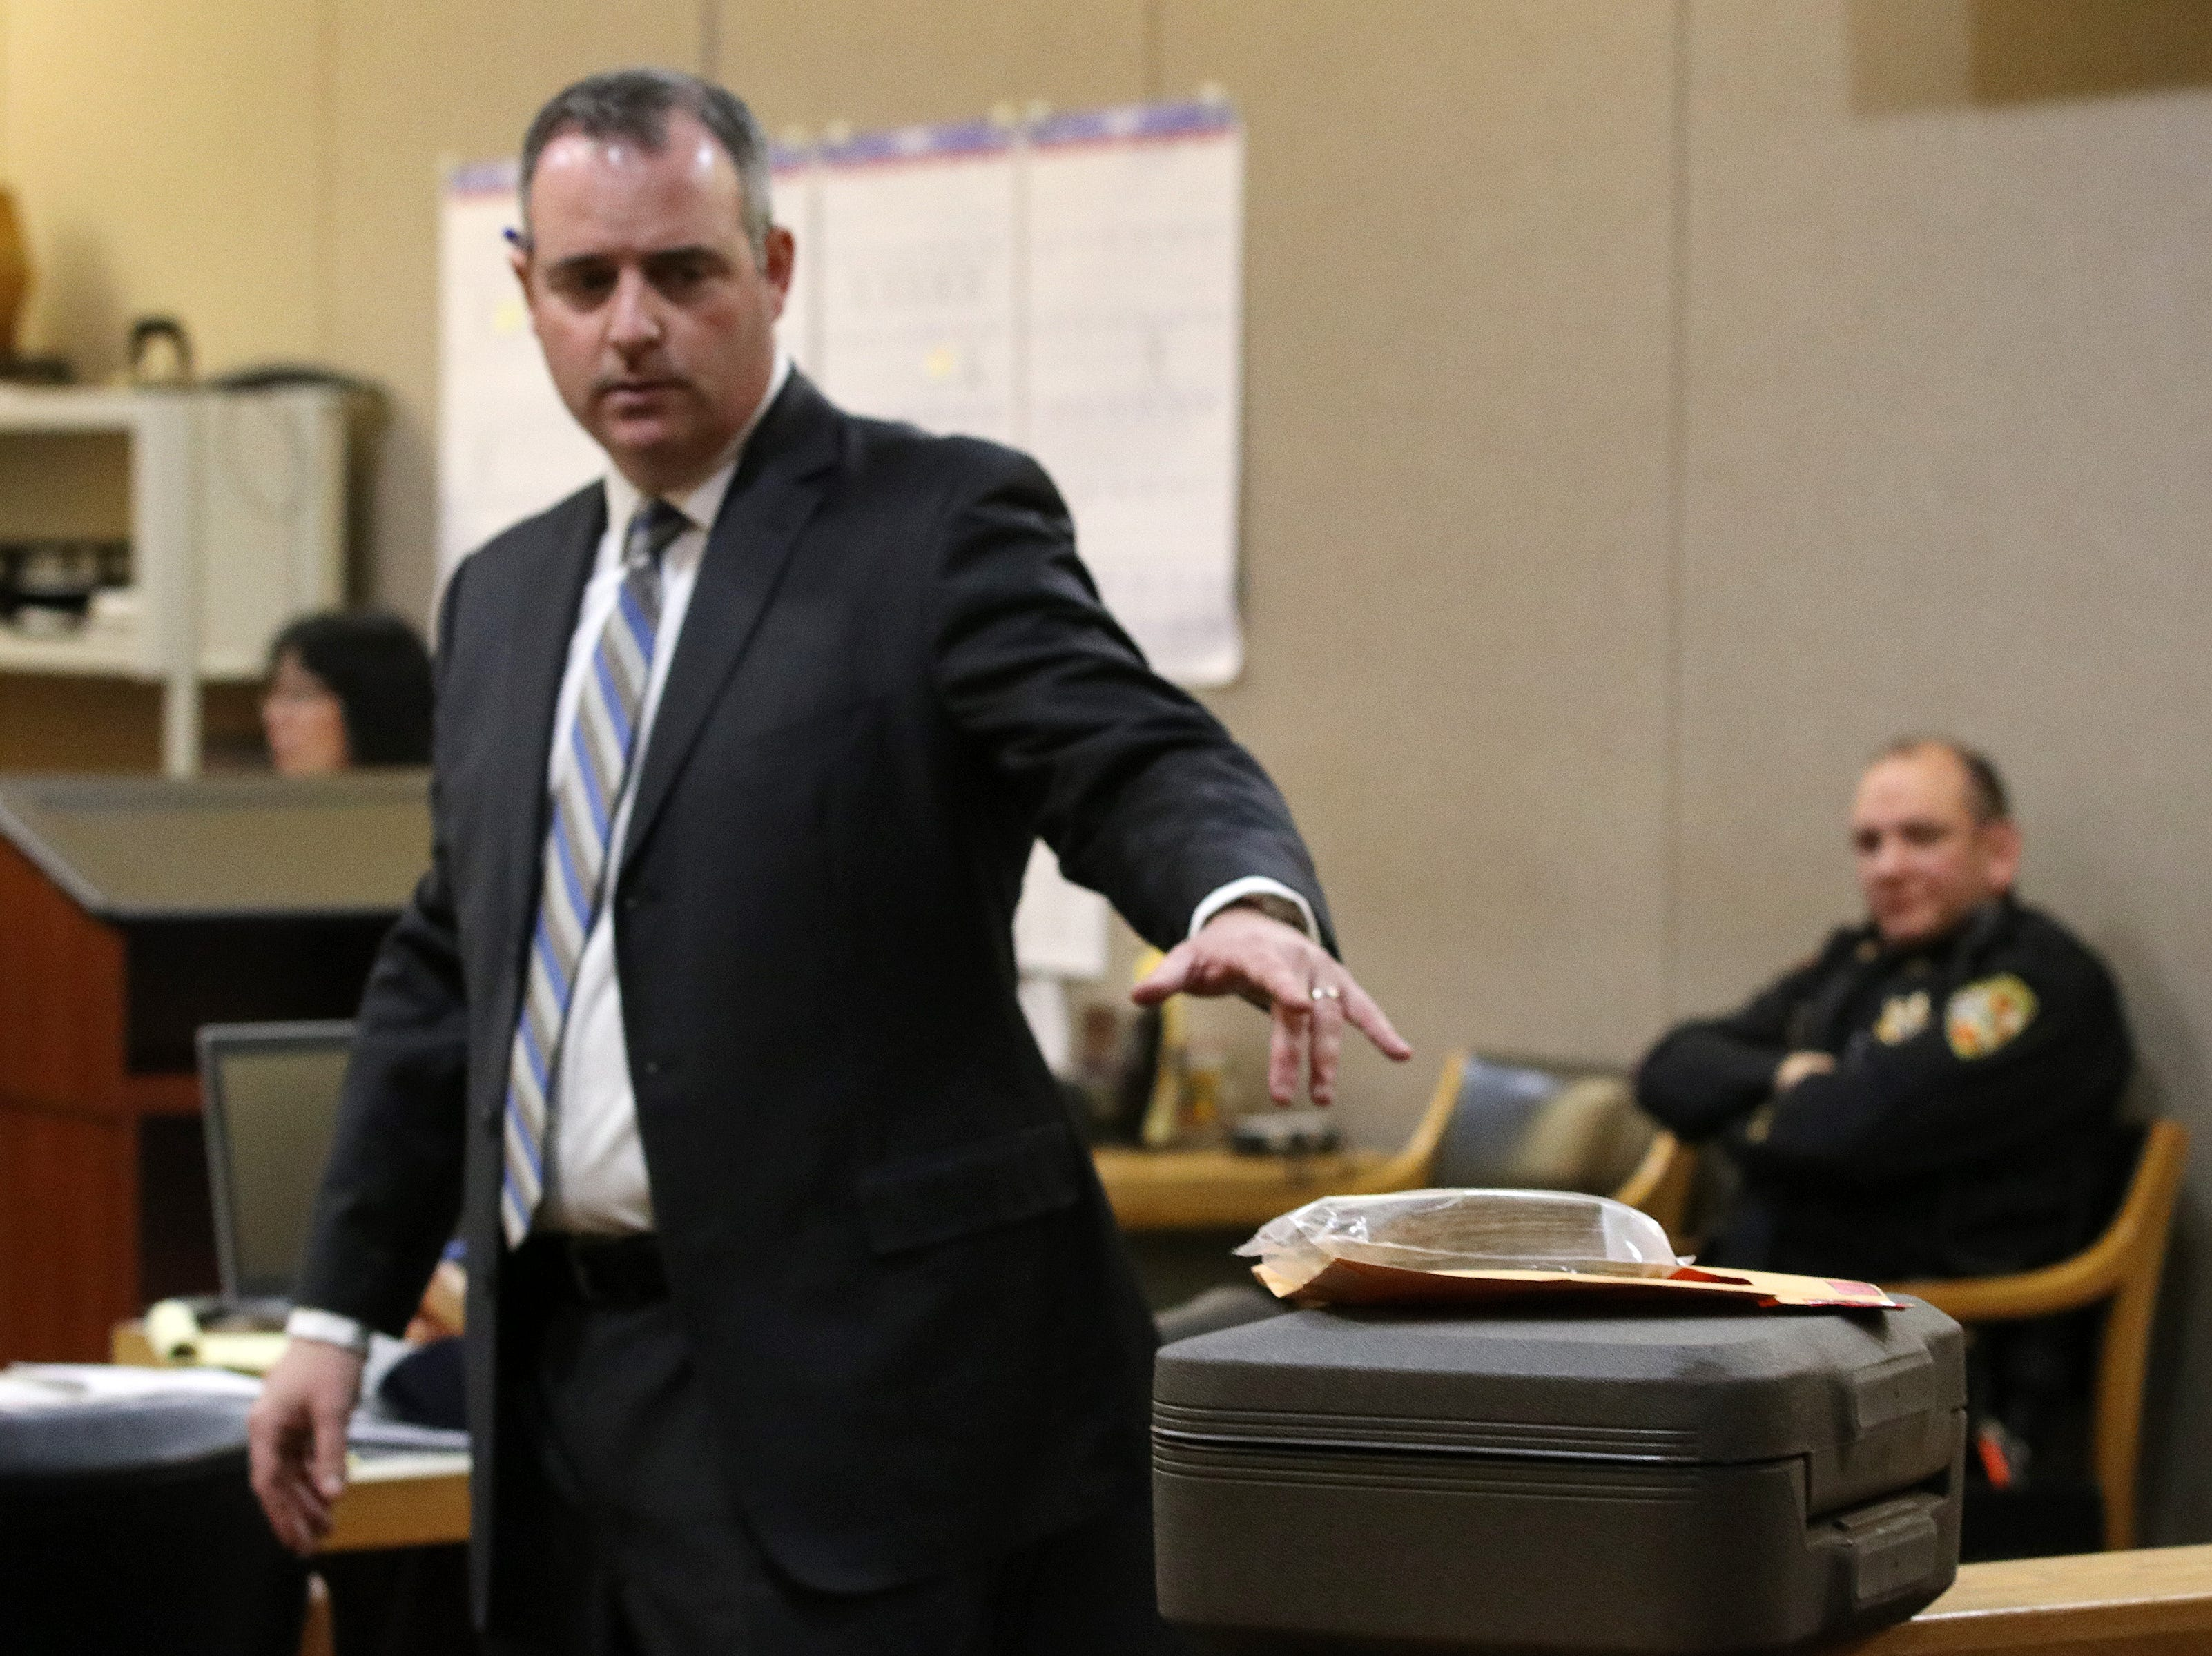 Christopher Decker, assistant Monmouth County prosecutor, presents a safe and cash found inside in Sandy Hook as evidence during the trial of Liam McAtasney, who is charged with the murder of former high school classmate, Sarah Stern, before Superior Court Judge Richard W. English at the Monmouth County Courthouse in Freehold, NJ Wednesday, February 6, 2019.